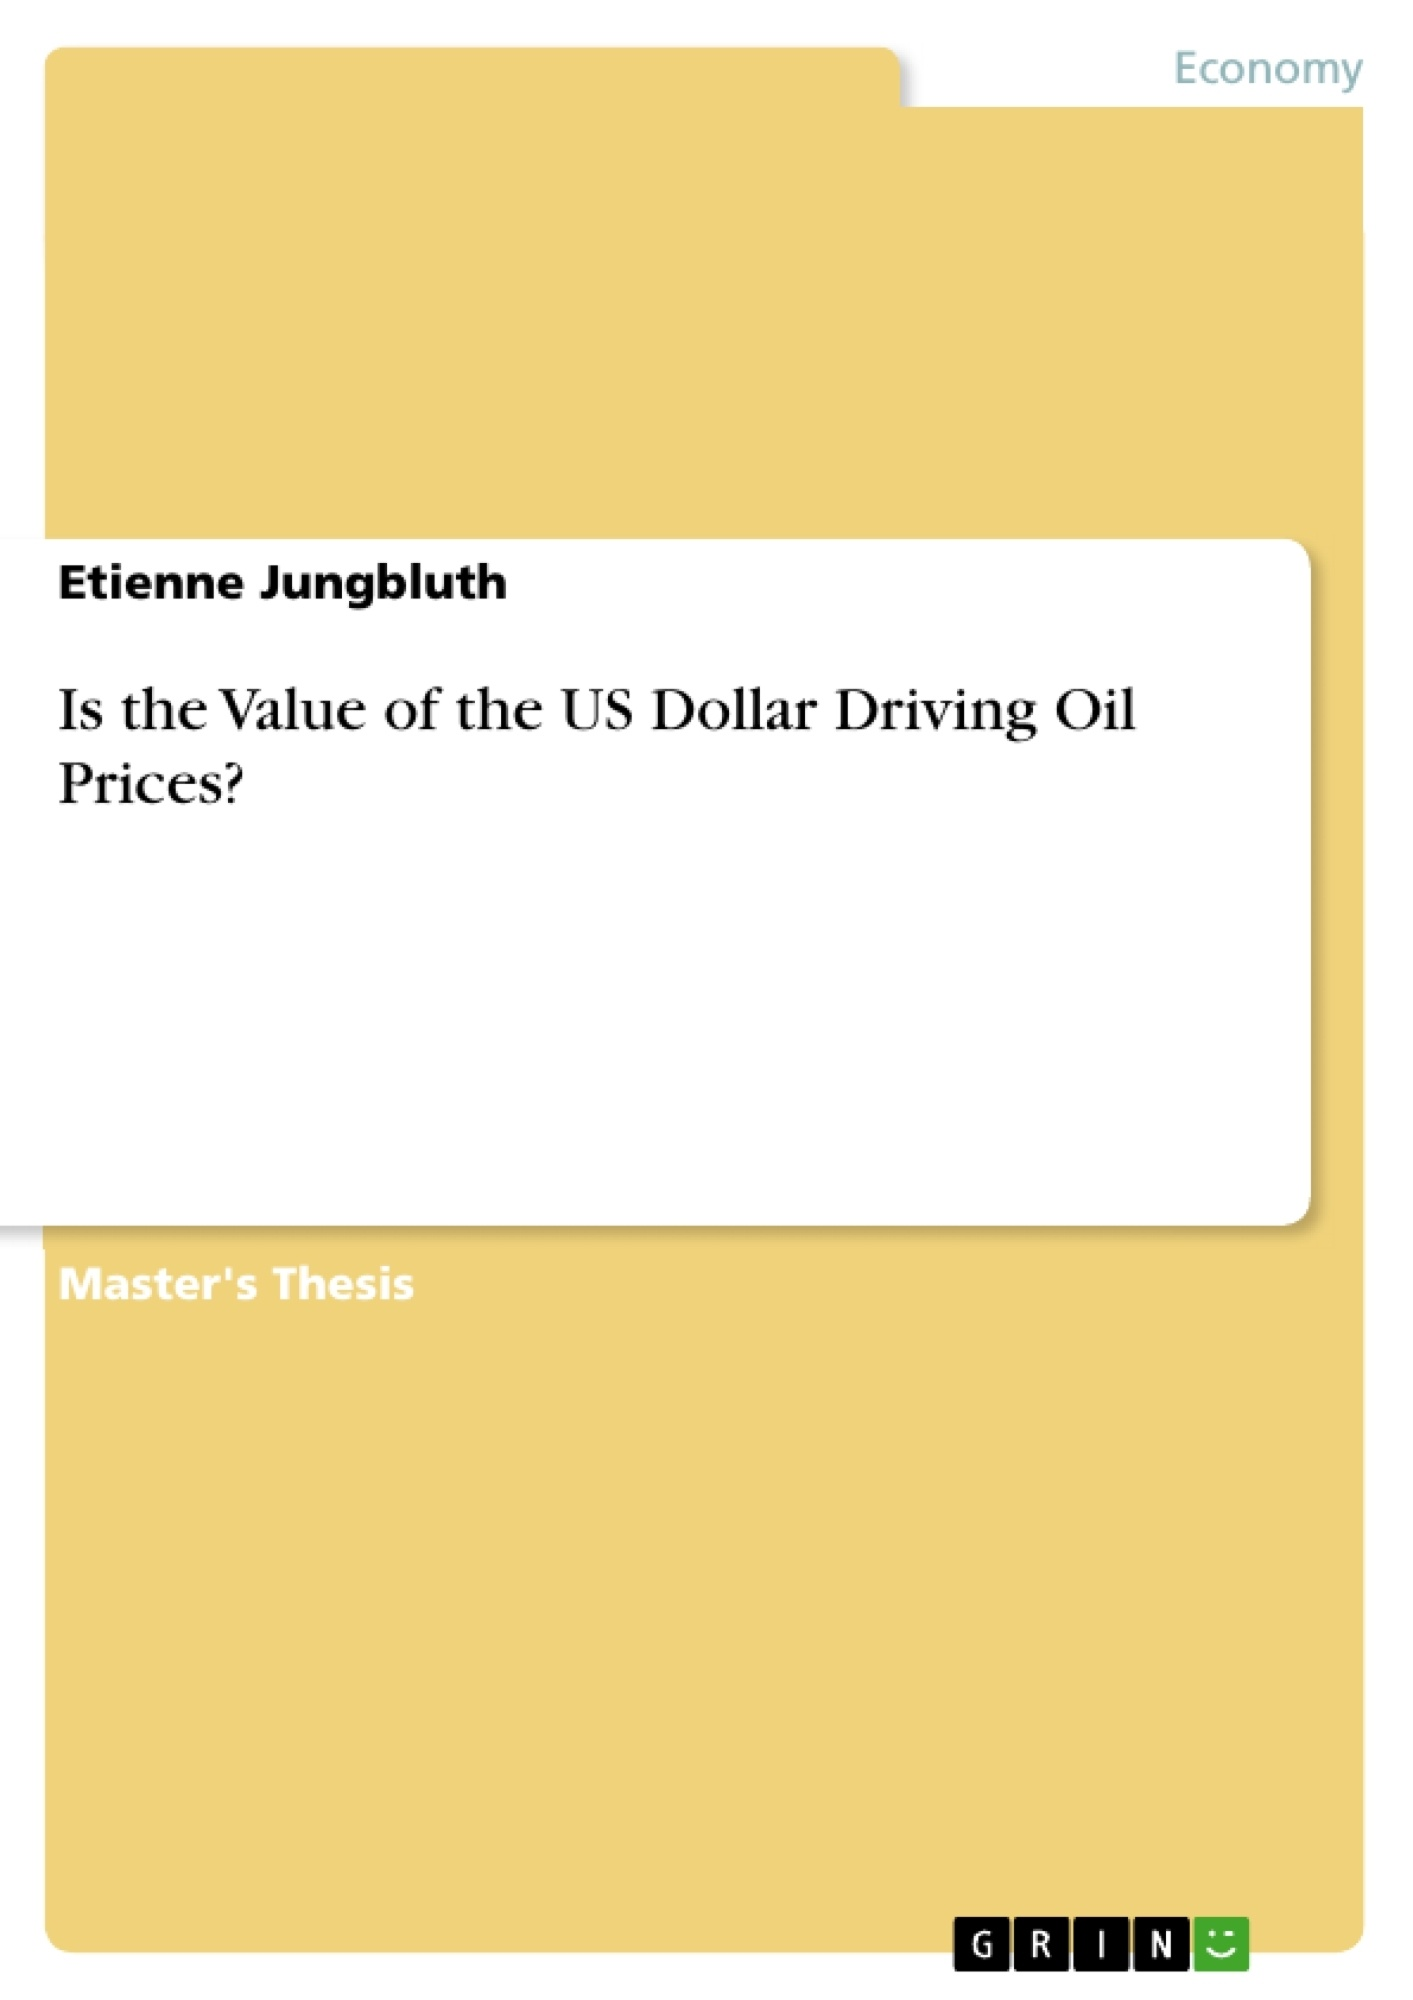 Title: Is the Value of the US Dollar Driving Oil Prices?